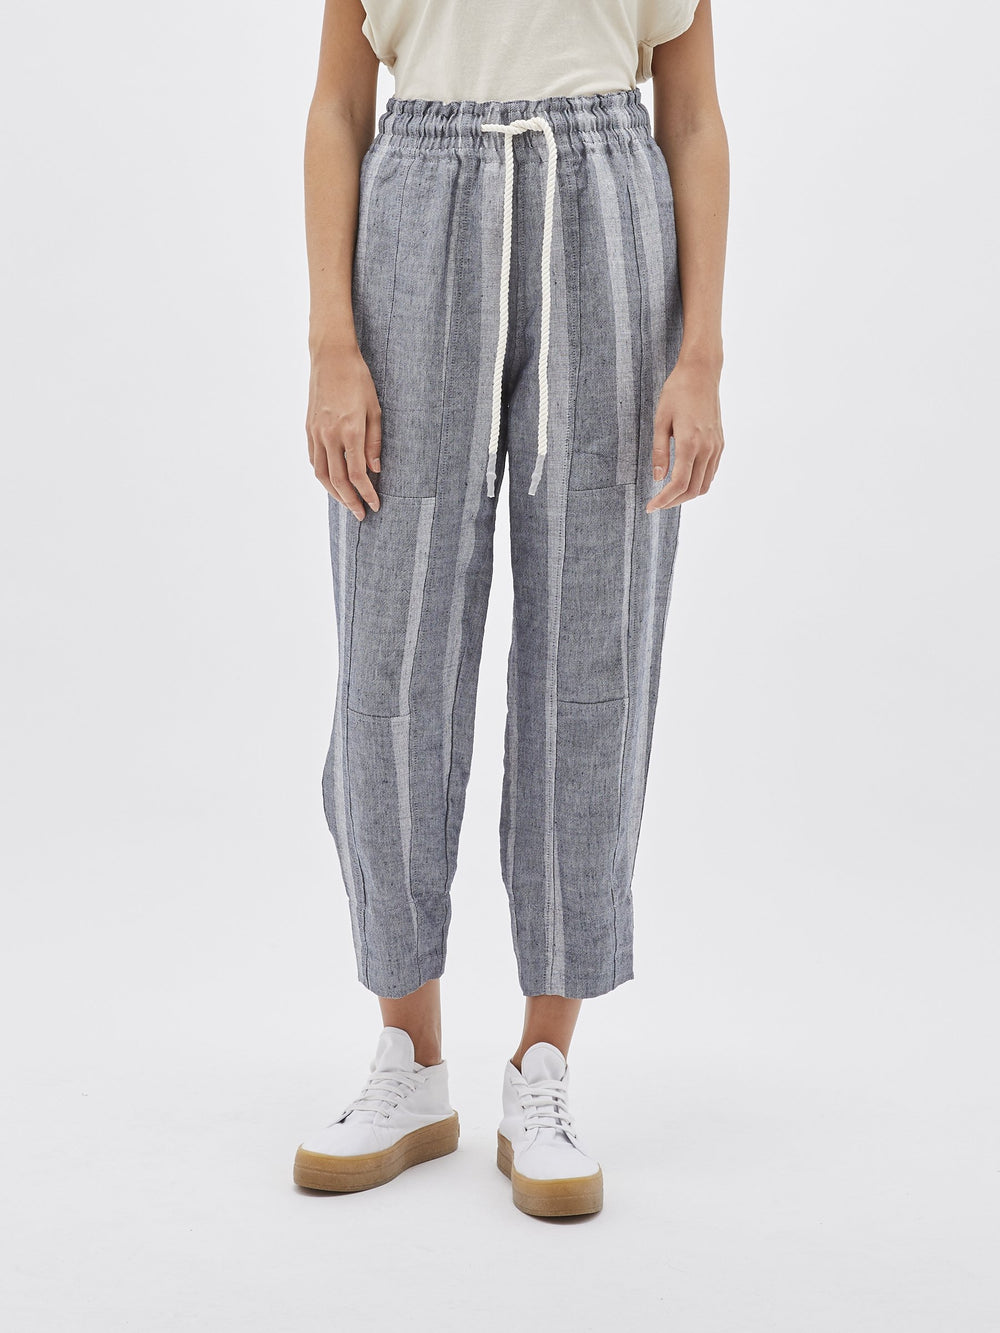 denim long rise panelled pant